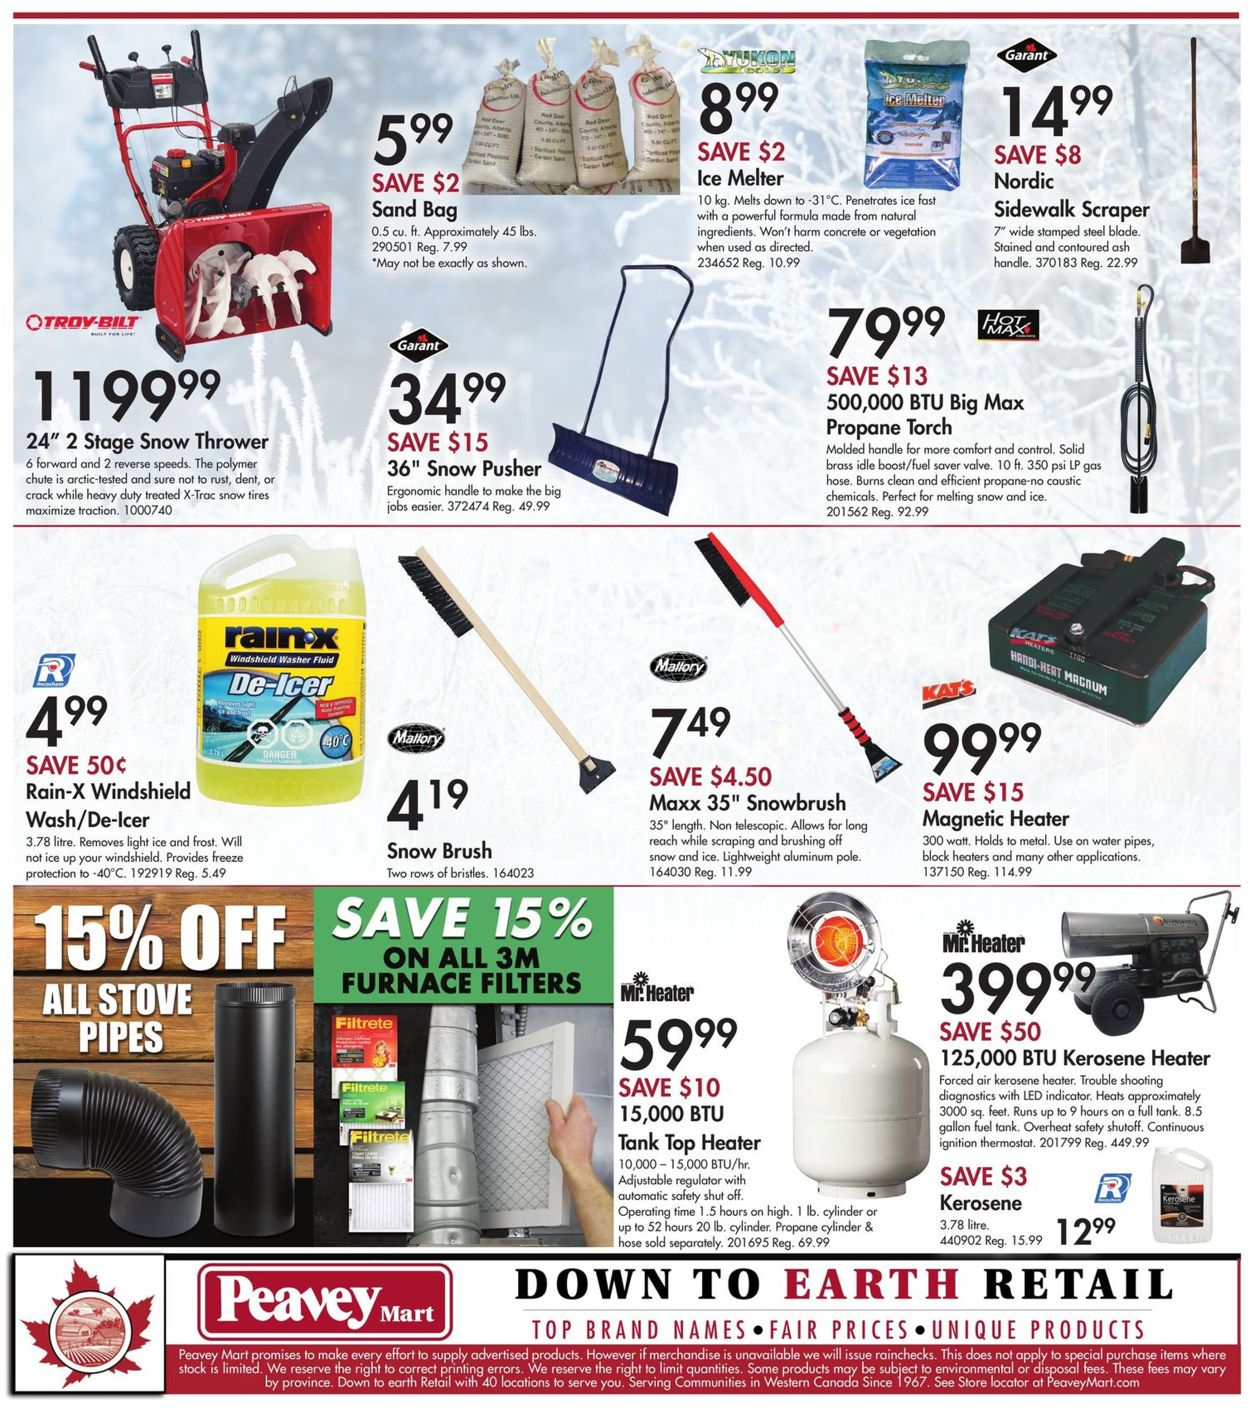 Peavey Mart - Christmas 2020 Flyer - 12/10-12/16/2020 (Page 10)